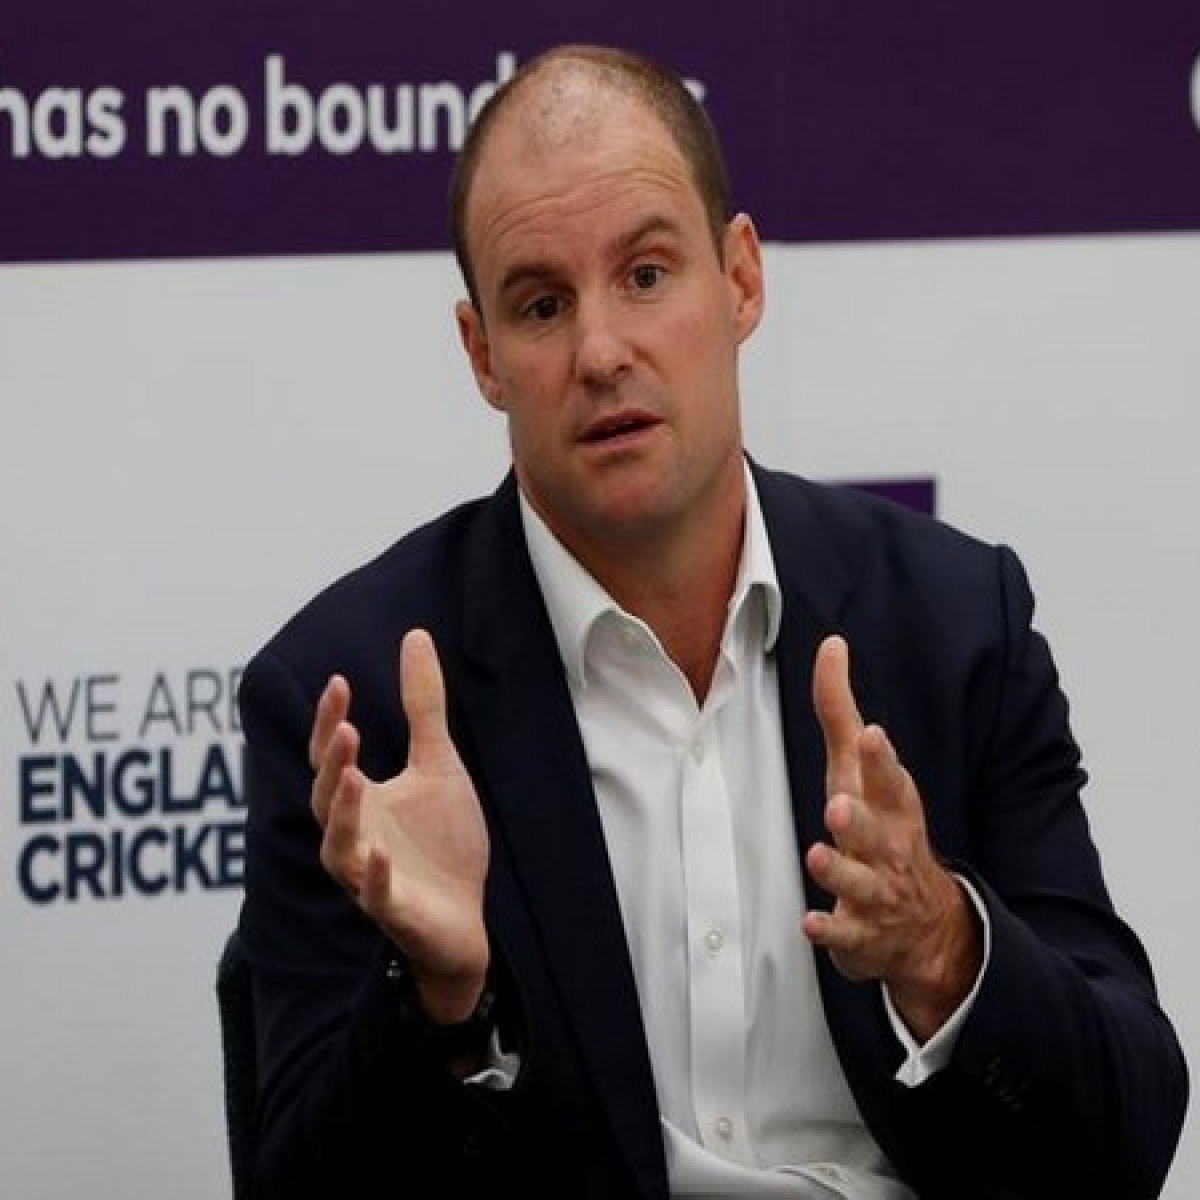 'By winning World Cup 2019, Morgan has climbed Everest'